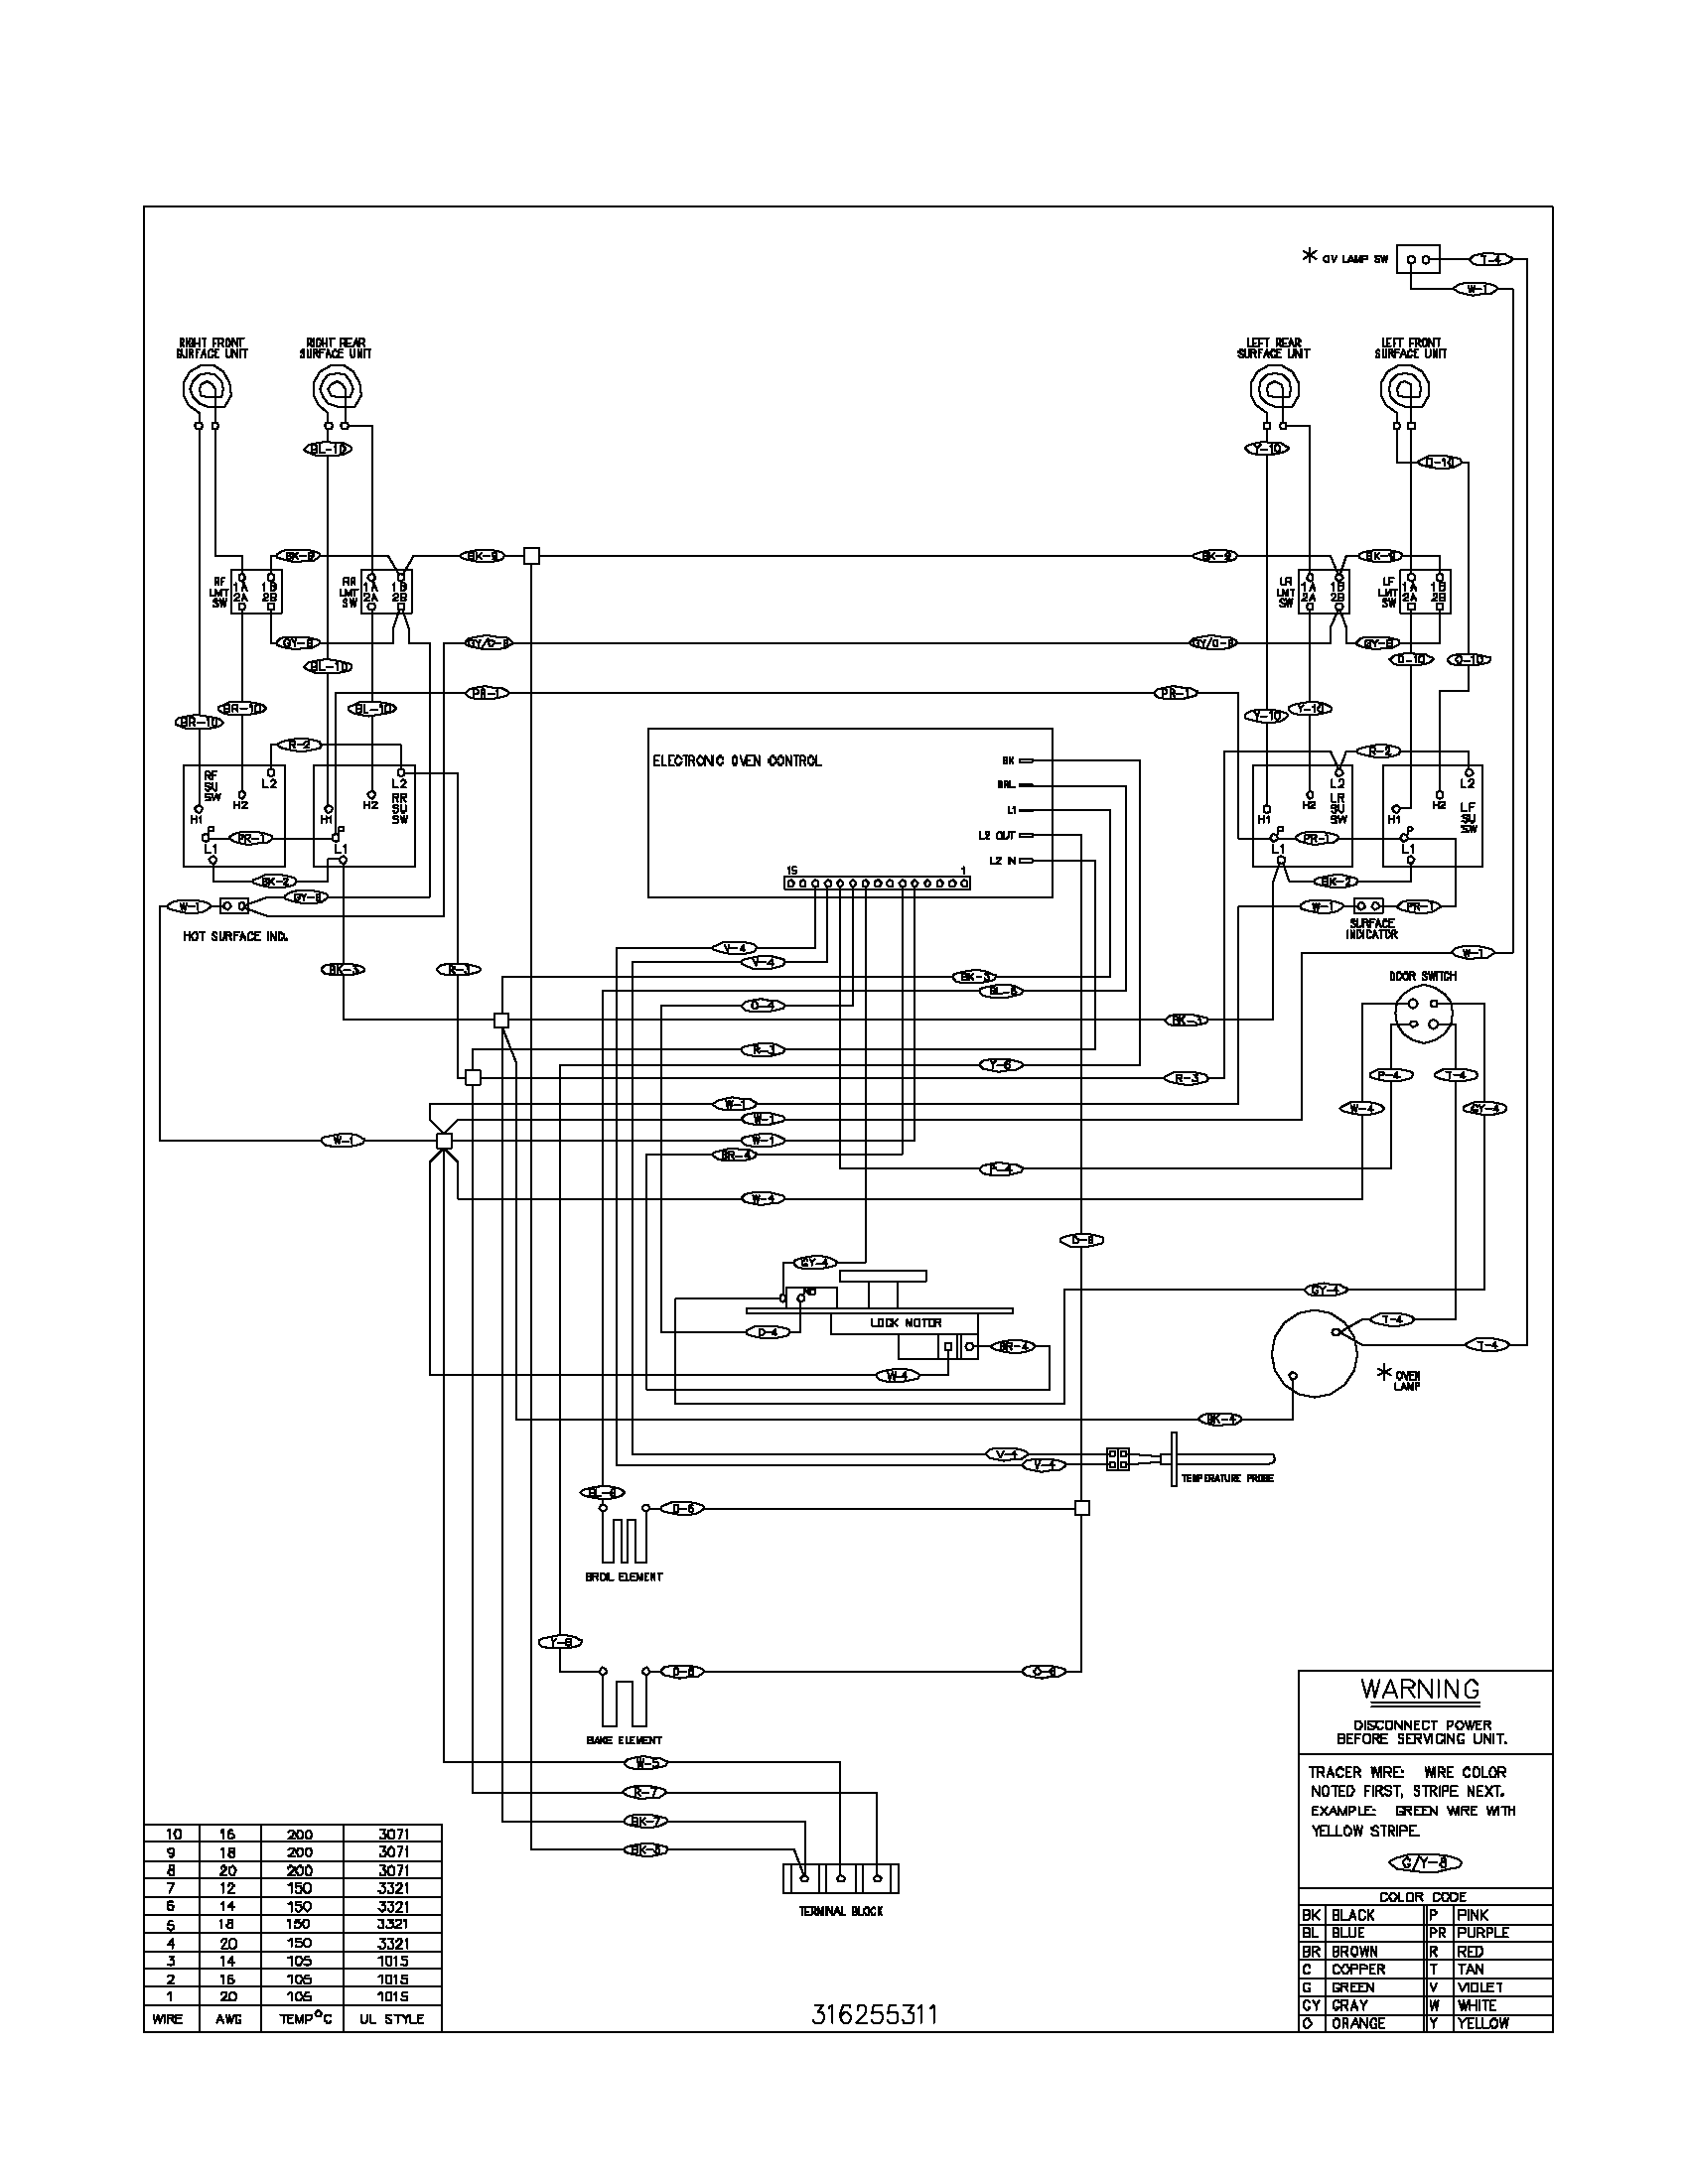 Appliance on control wiring diagrams